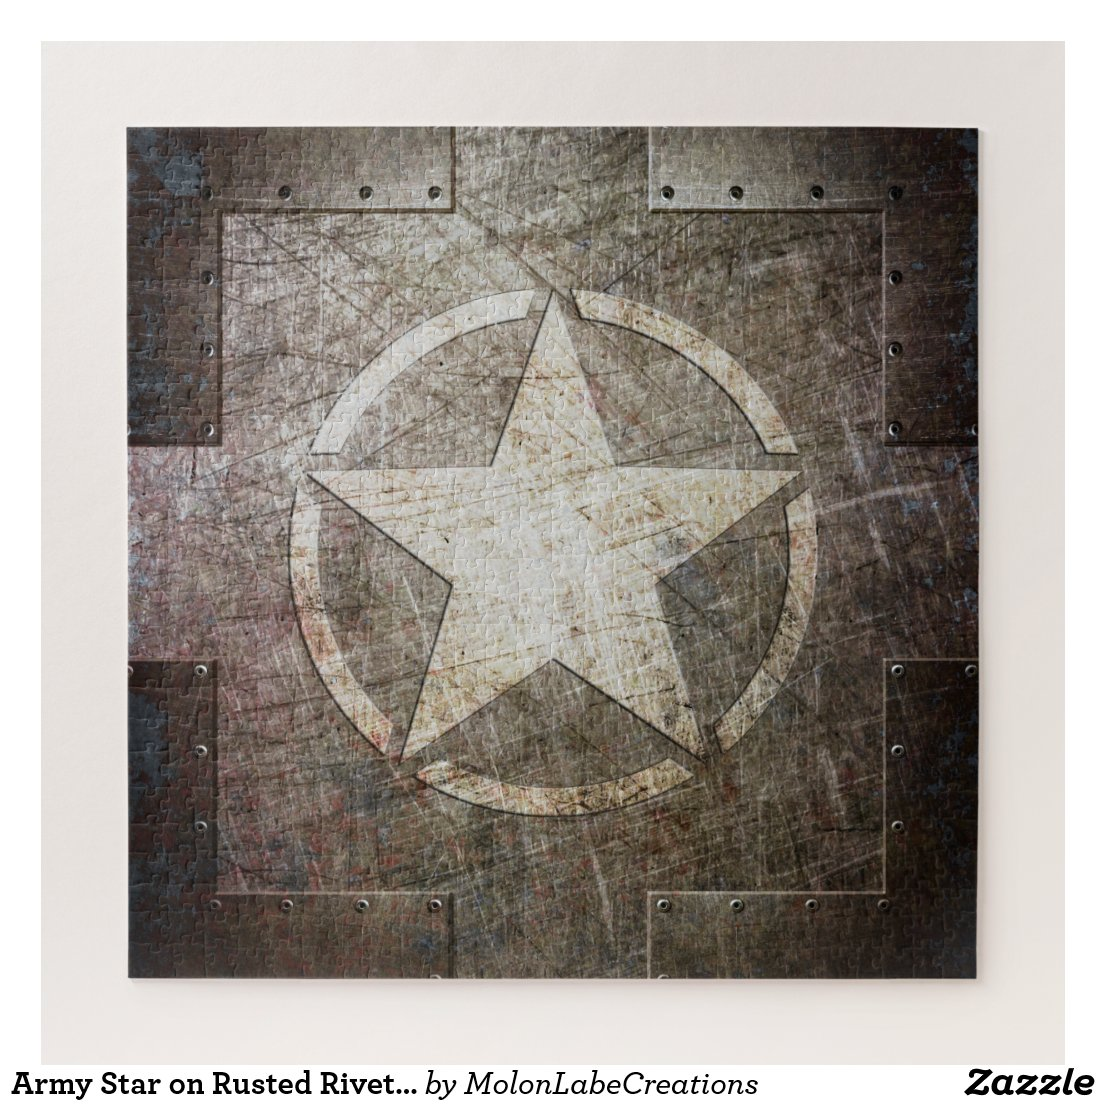 Army Star on Rusted Riveted Steel Plate Jigsaw Puzzle